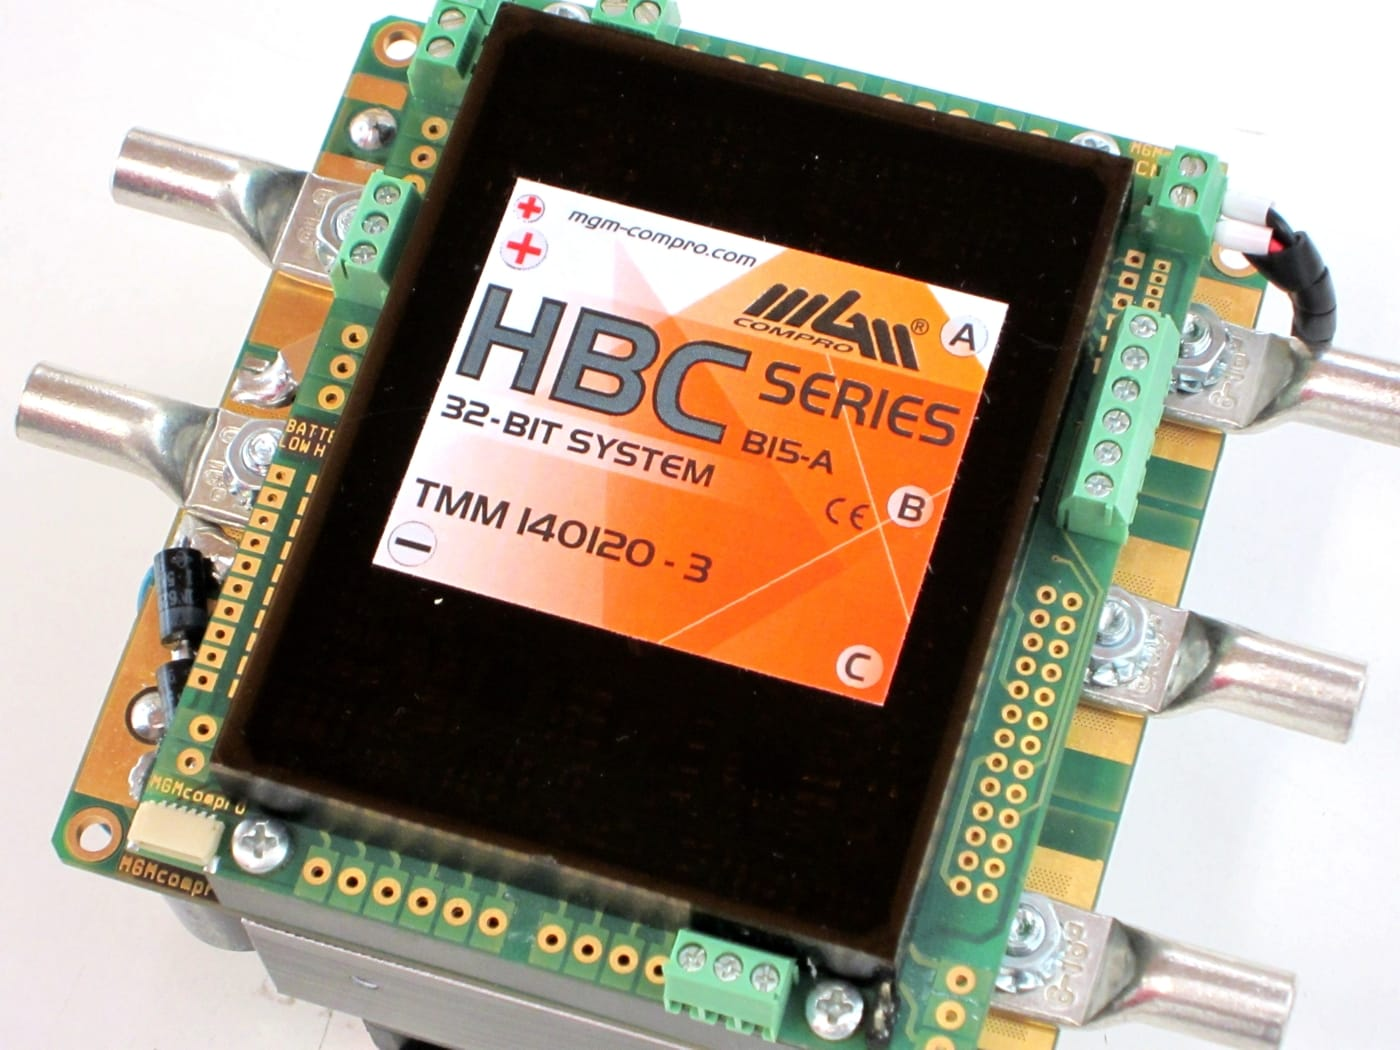 775-industrial-speed-controller-hbc-series-140120-pic-2